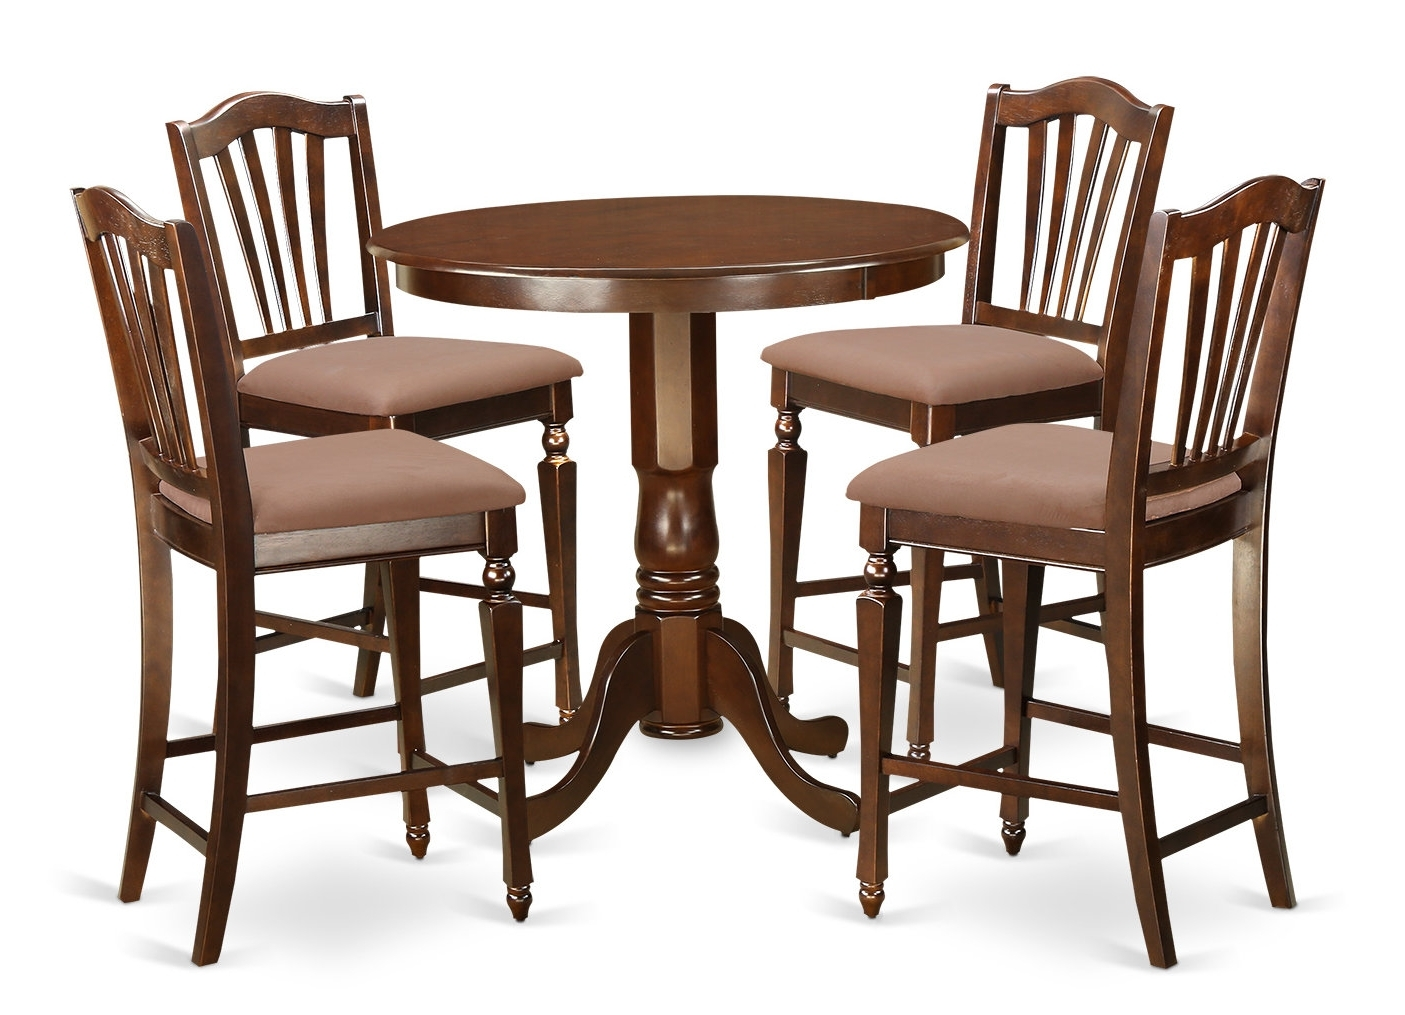 East West Jackson 5 Piece Counter Height Pub Table Set (View 7 of 25)